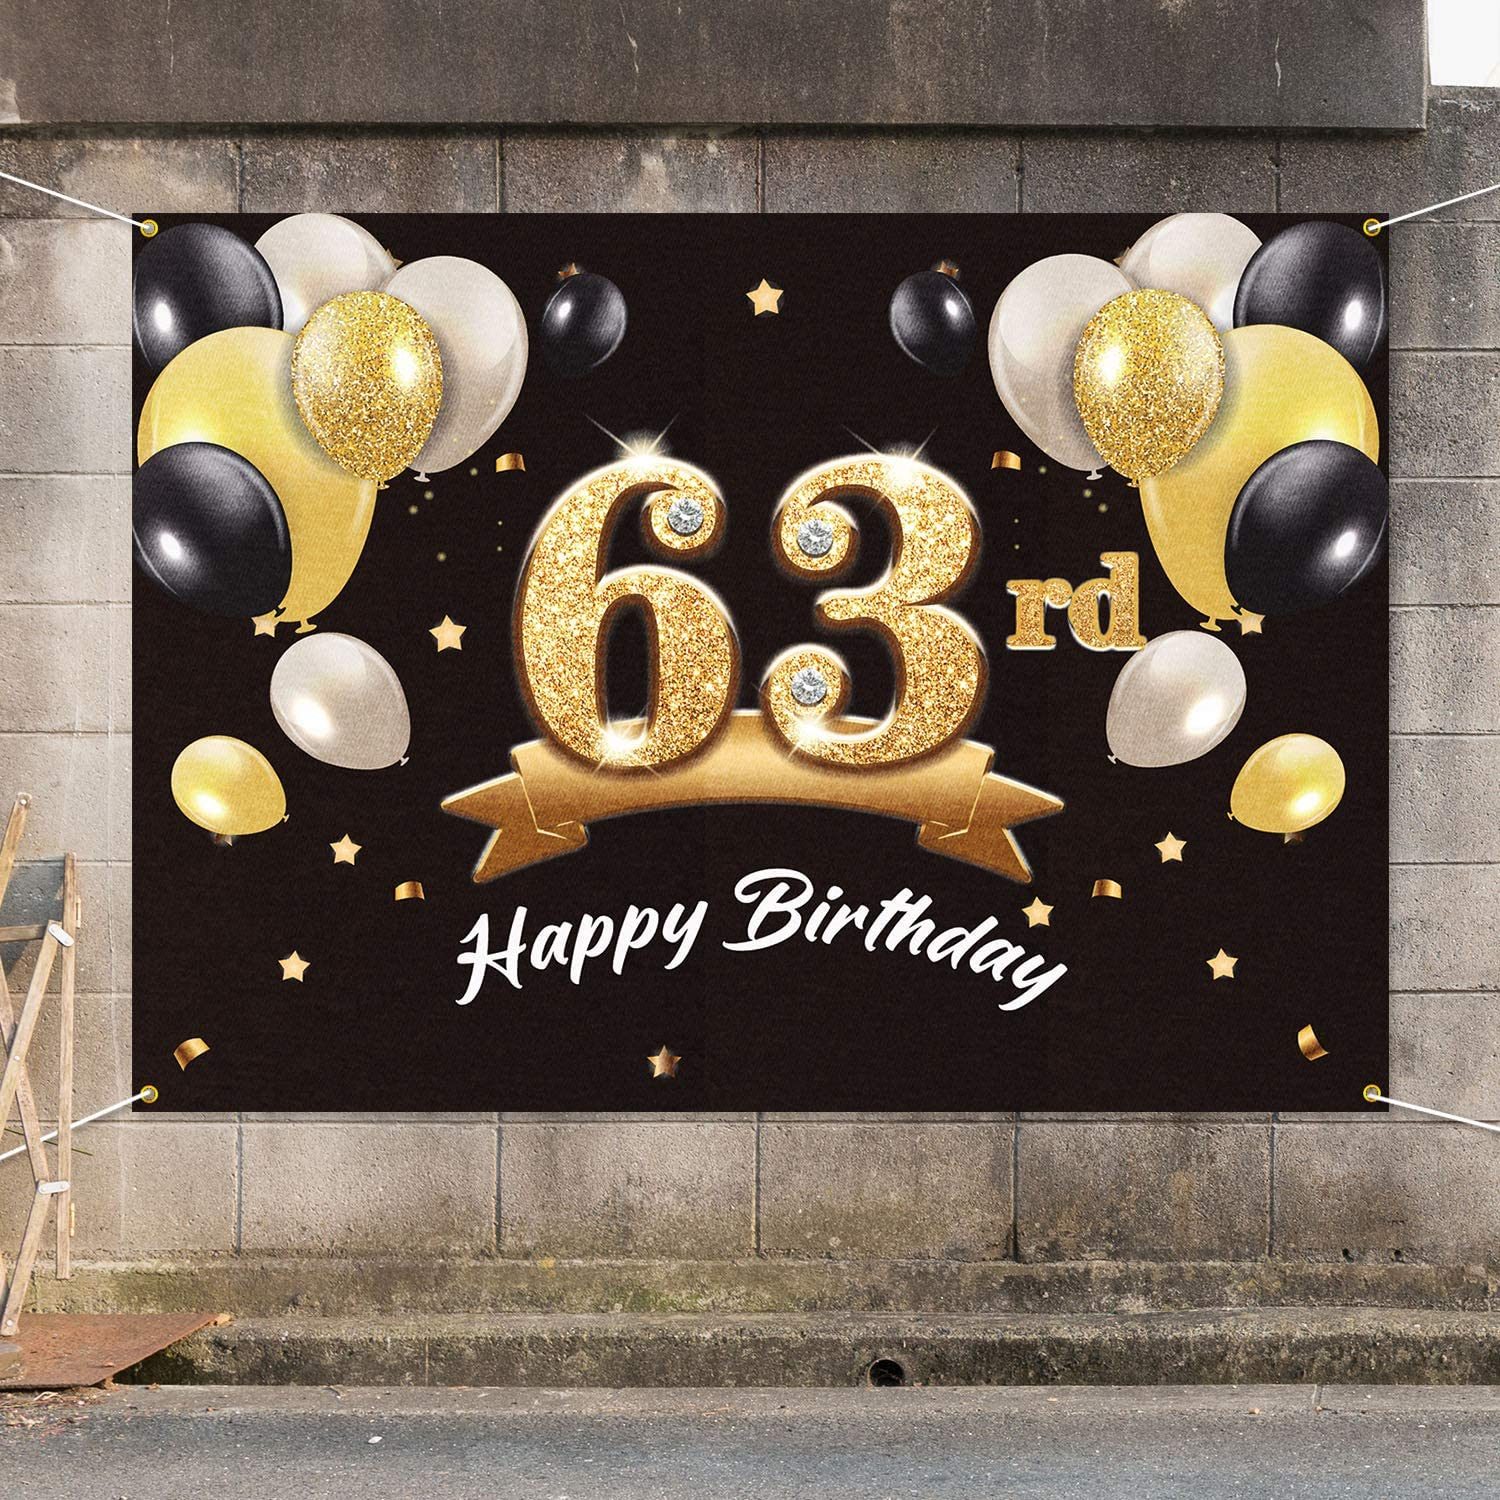 63 Birthday Party Decorations Supplies for Men PAKBOOM Happy 63rd Birthday Banner Backdrop Black Gold 4 x 6ft